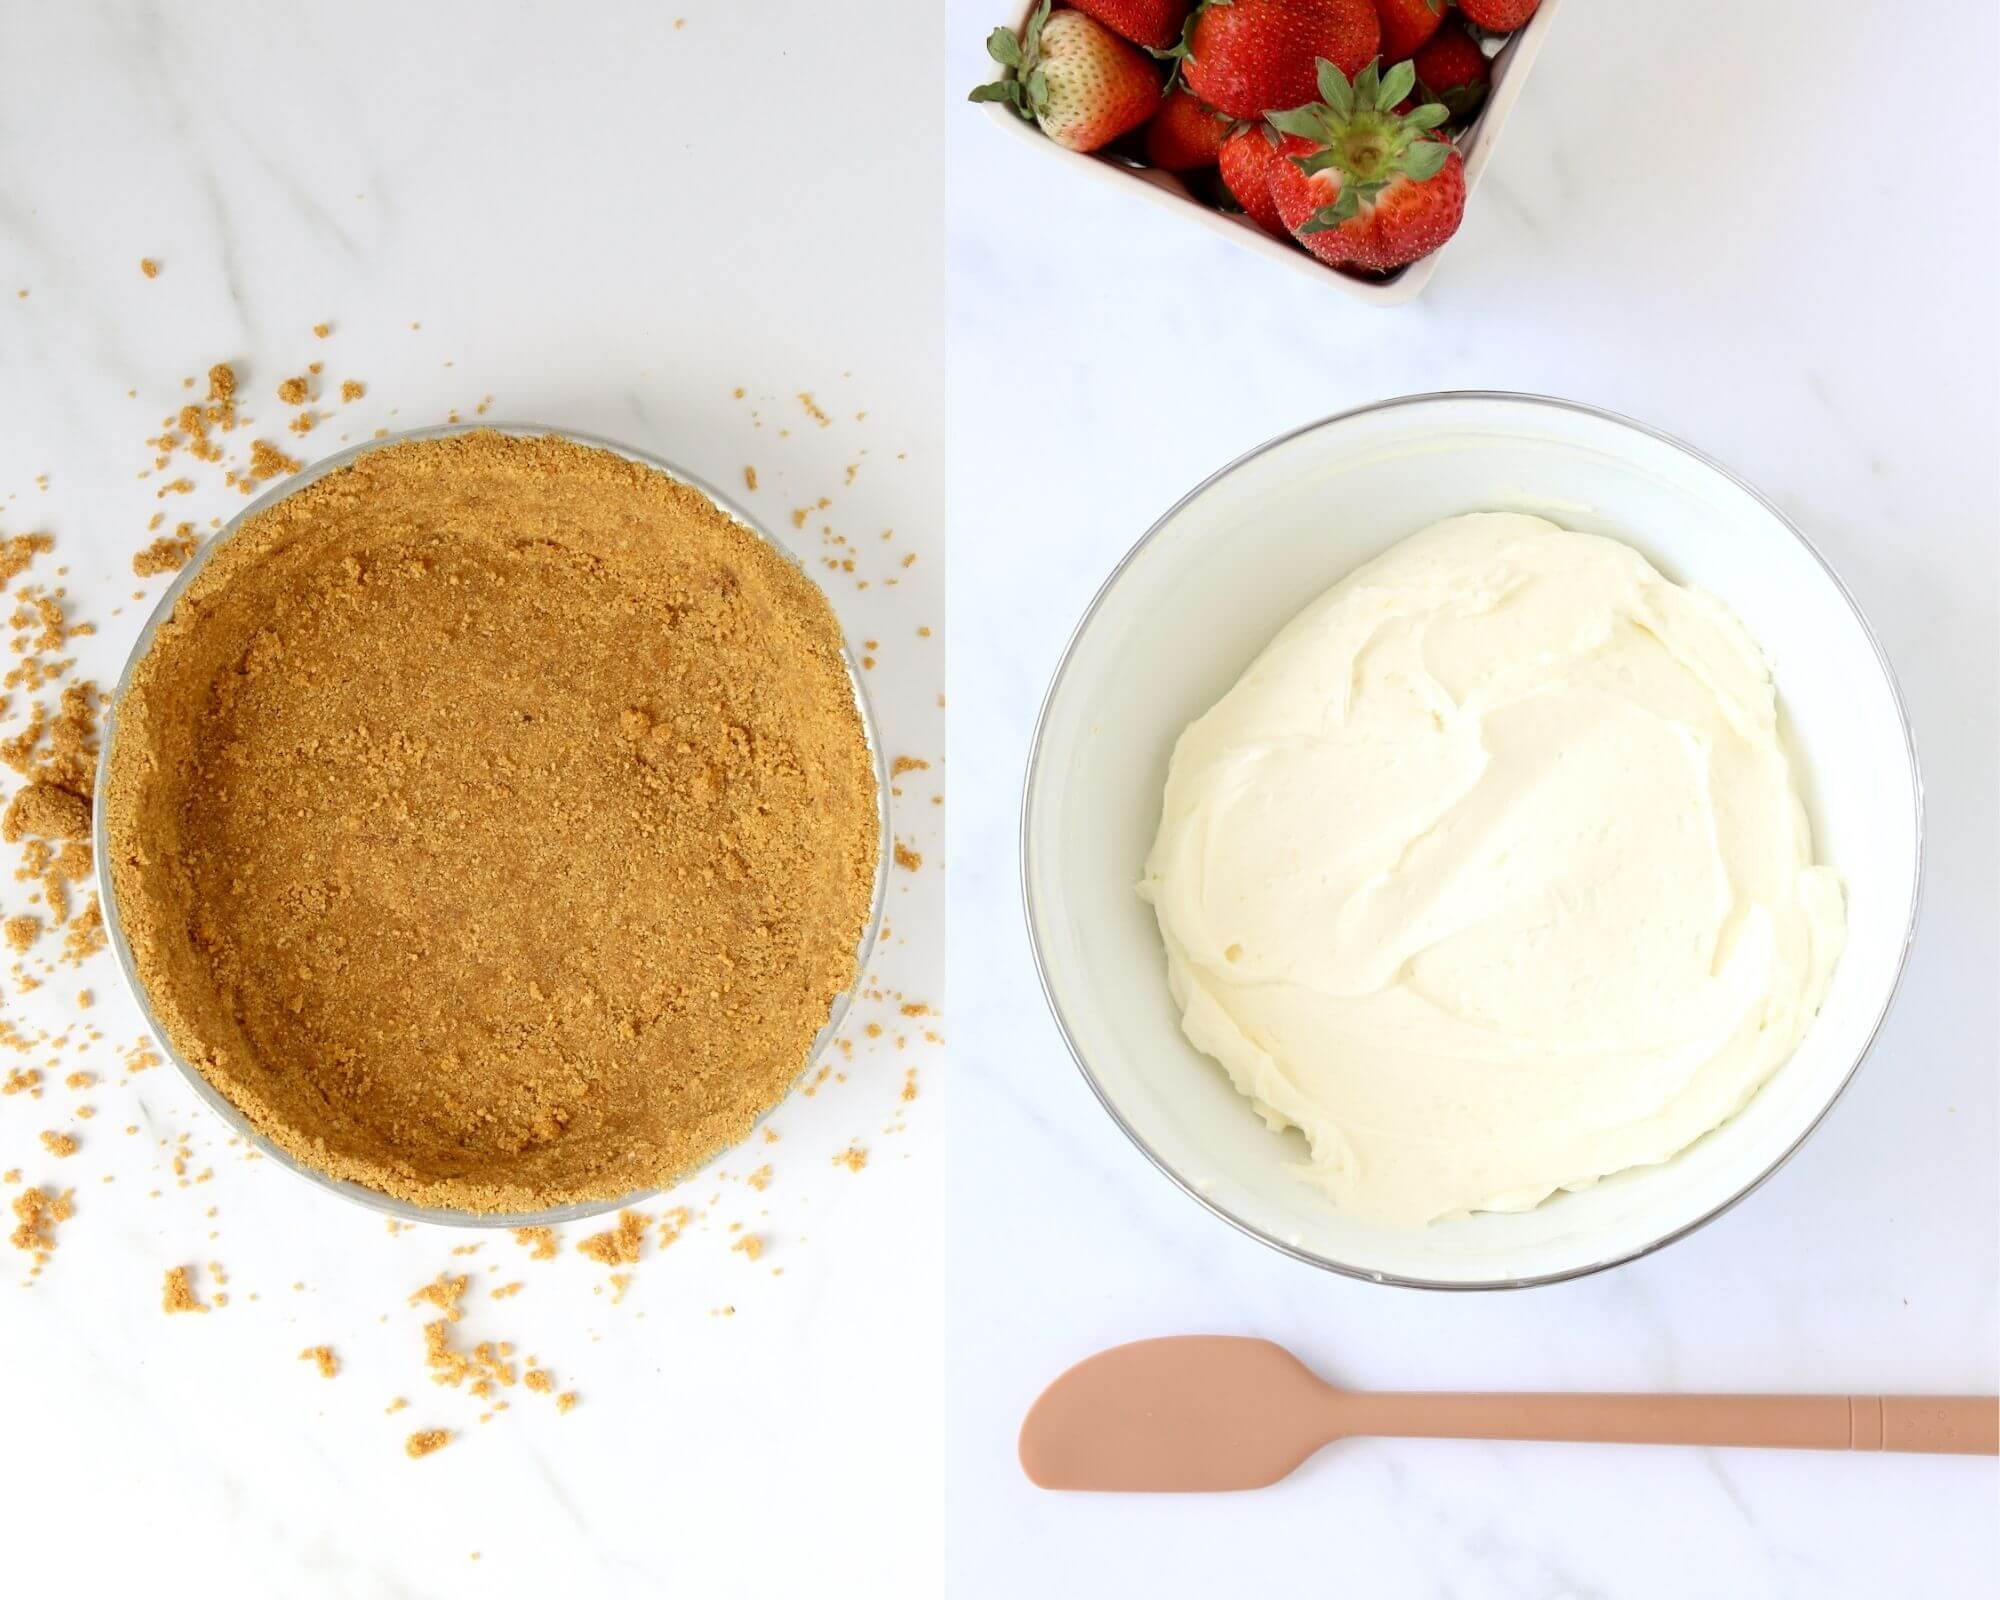 One picture of a graham cracker crust next to a bowl of whipped cheesecake filling.